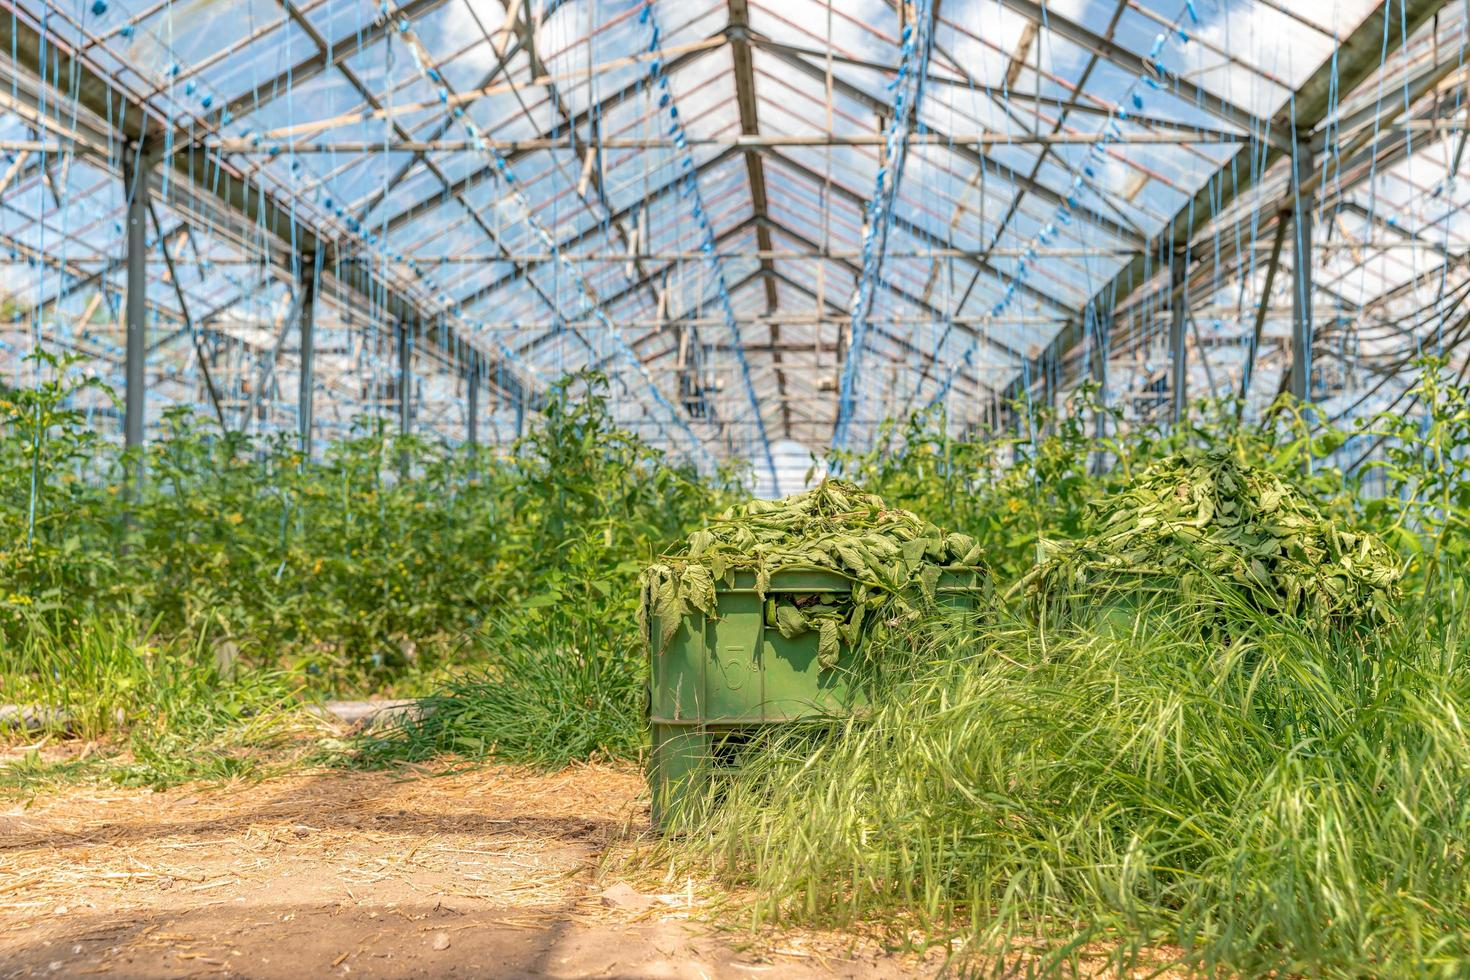 A greenhouse in production on sunny day photo